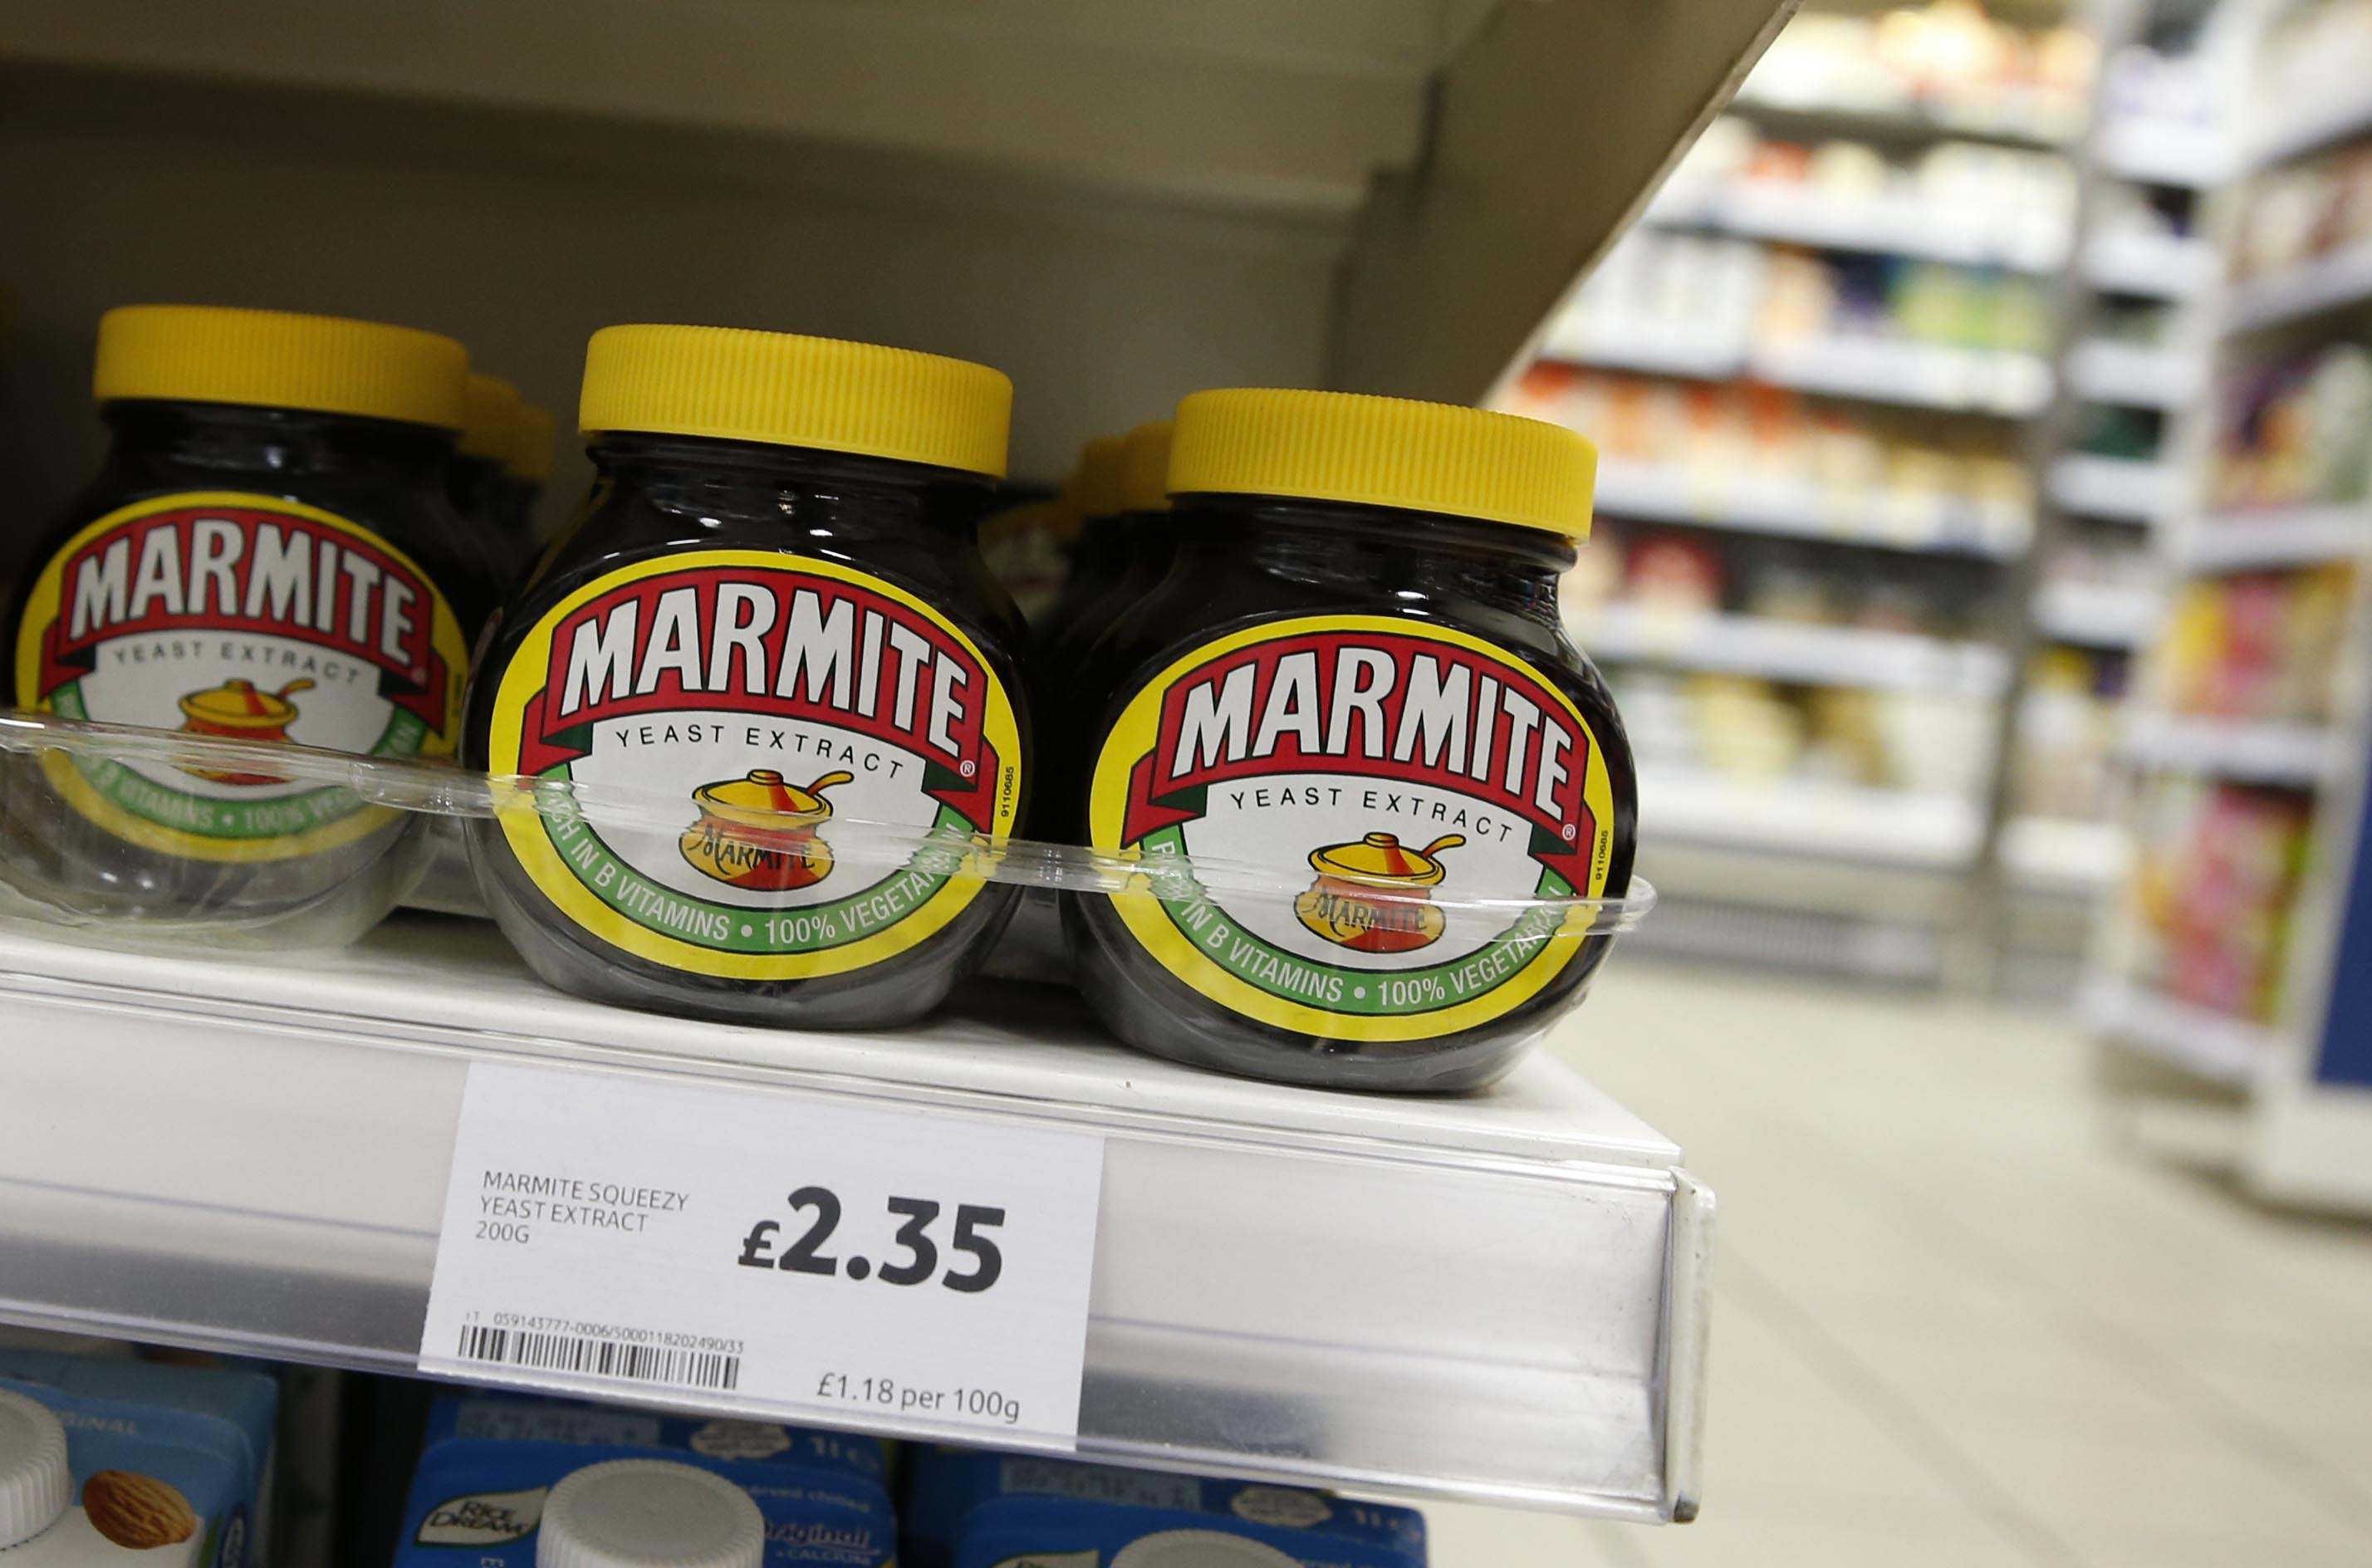 Jars of savoury spread 'Marmite' which is owned by the Anglo-Dutch multinational Unilever, on sale in a supermarket  in central London, on Thursday, October 13, 2016. Photo: AP/File